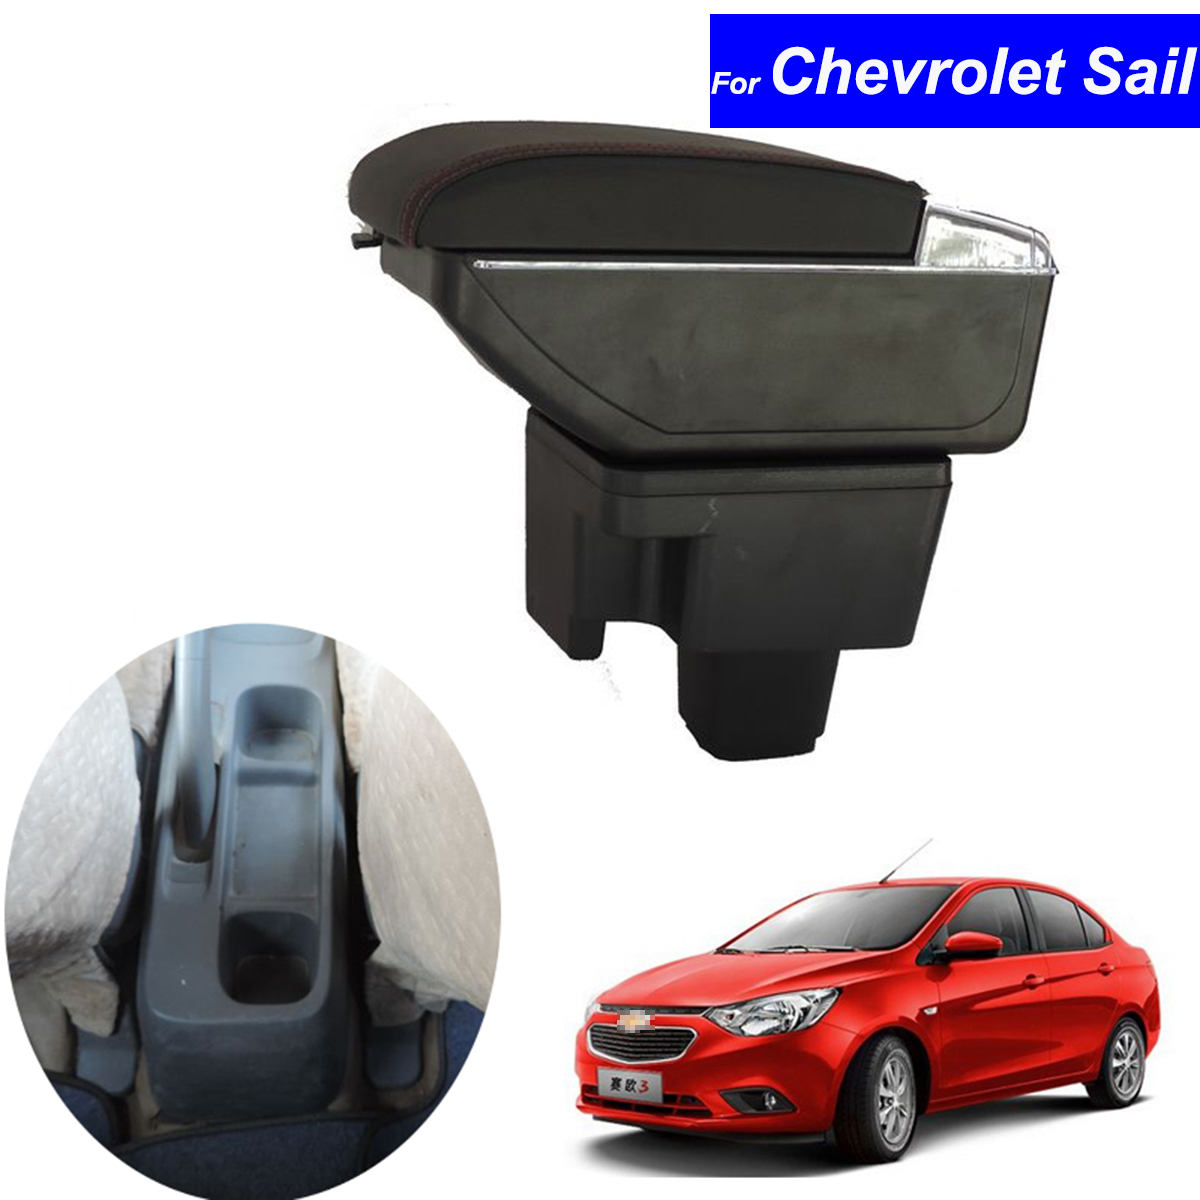 Leather Car Center Console Armrests Storage Box for Chevrolet Sail 2010 2011 2012 2013 2014 Auto